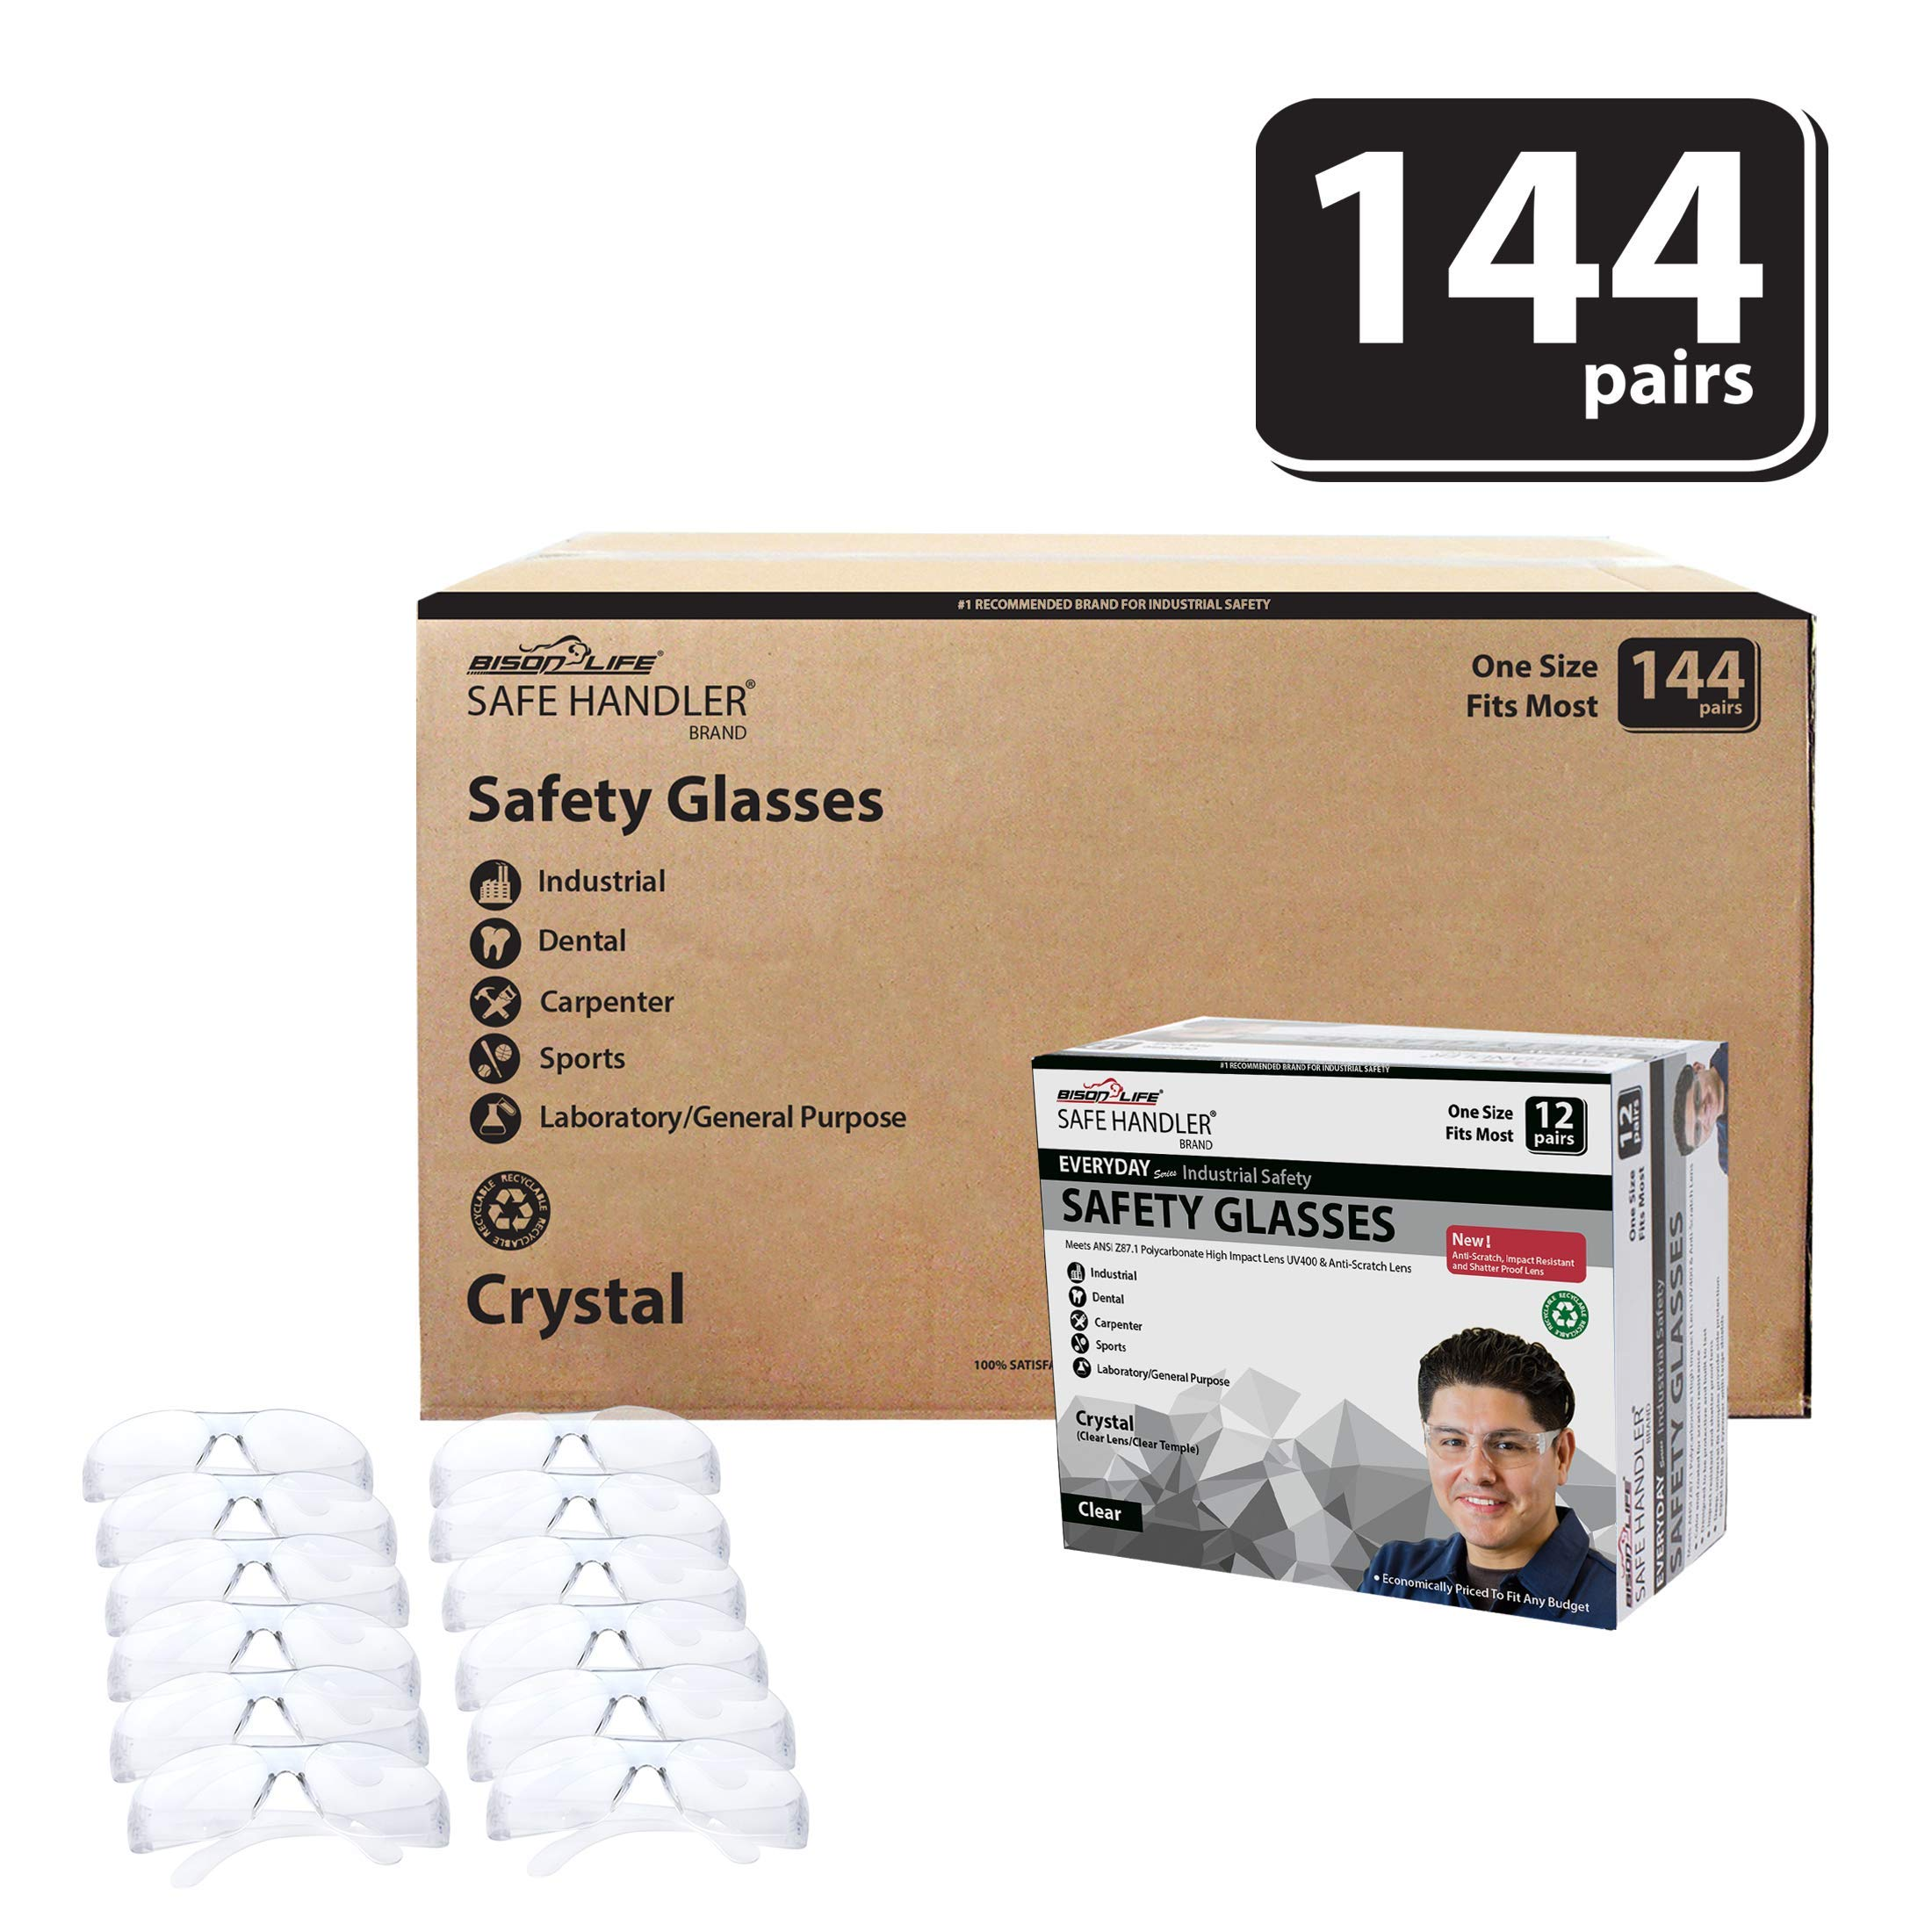 BISON LIFE Safety Glasses | One Size, Clear Protective Polycarbonate Lens, Clear Temple, 12 per Box (Case of 12 boxes, 144 pairs total)